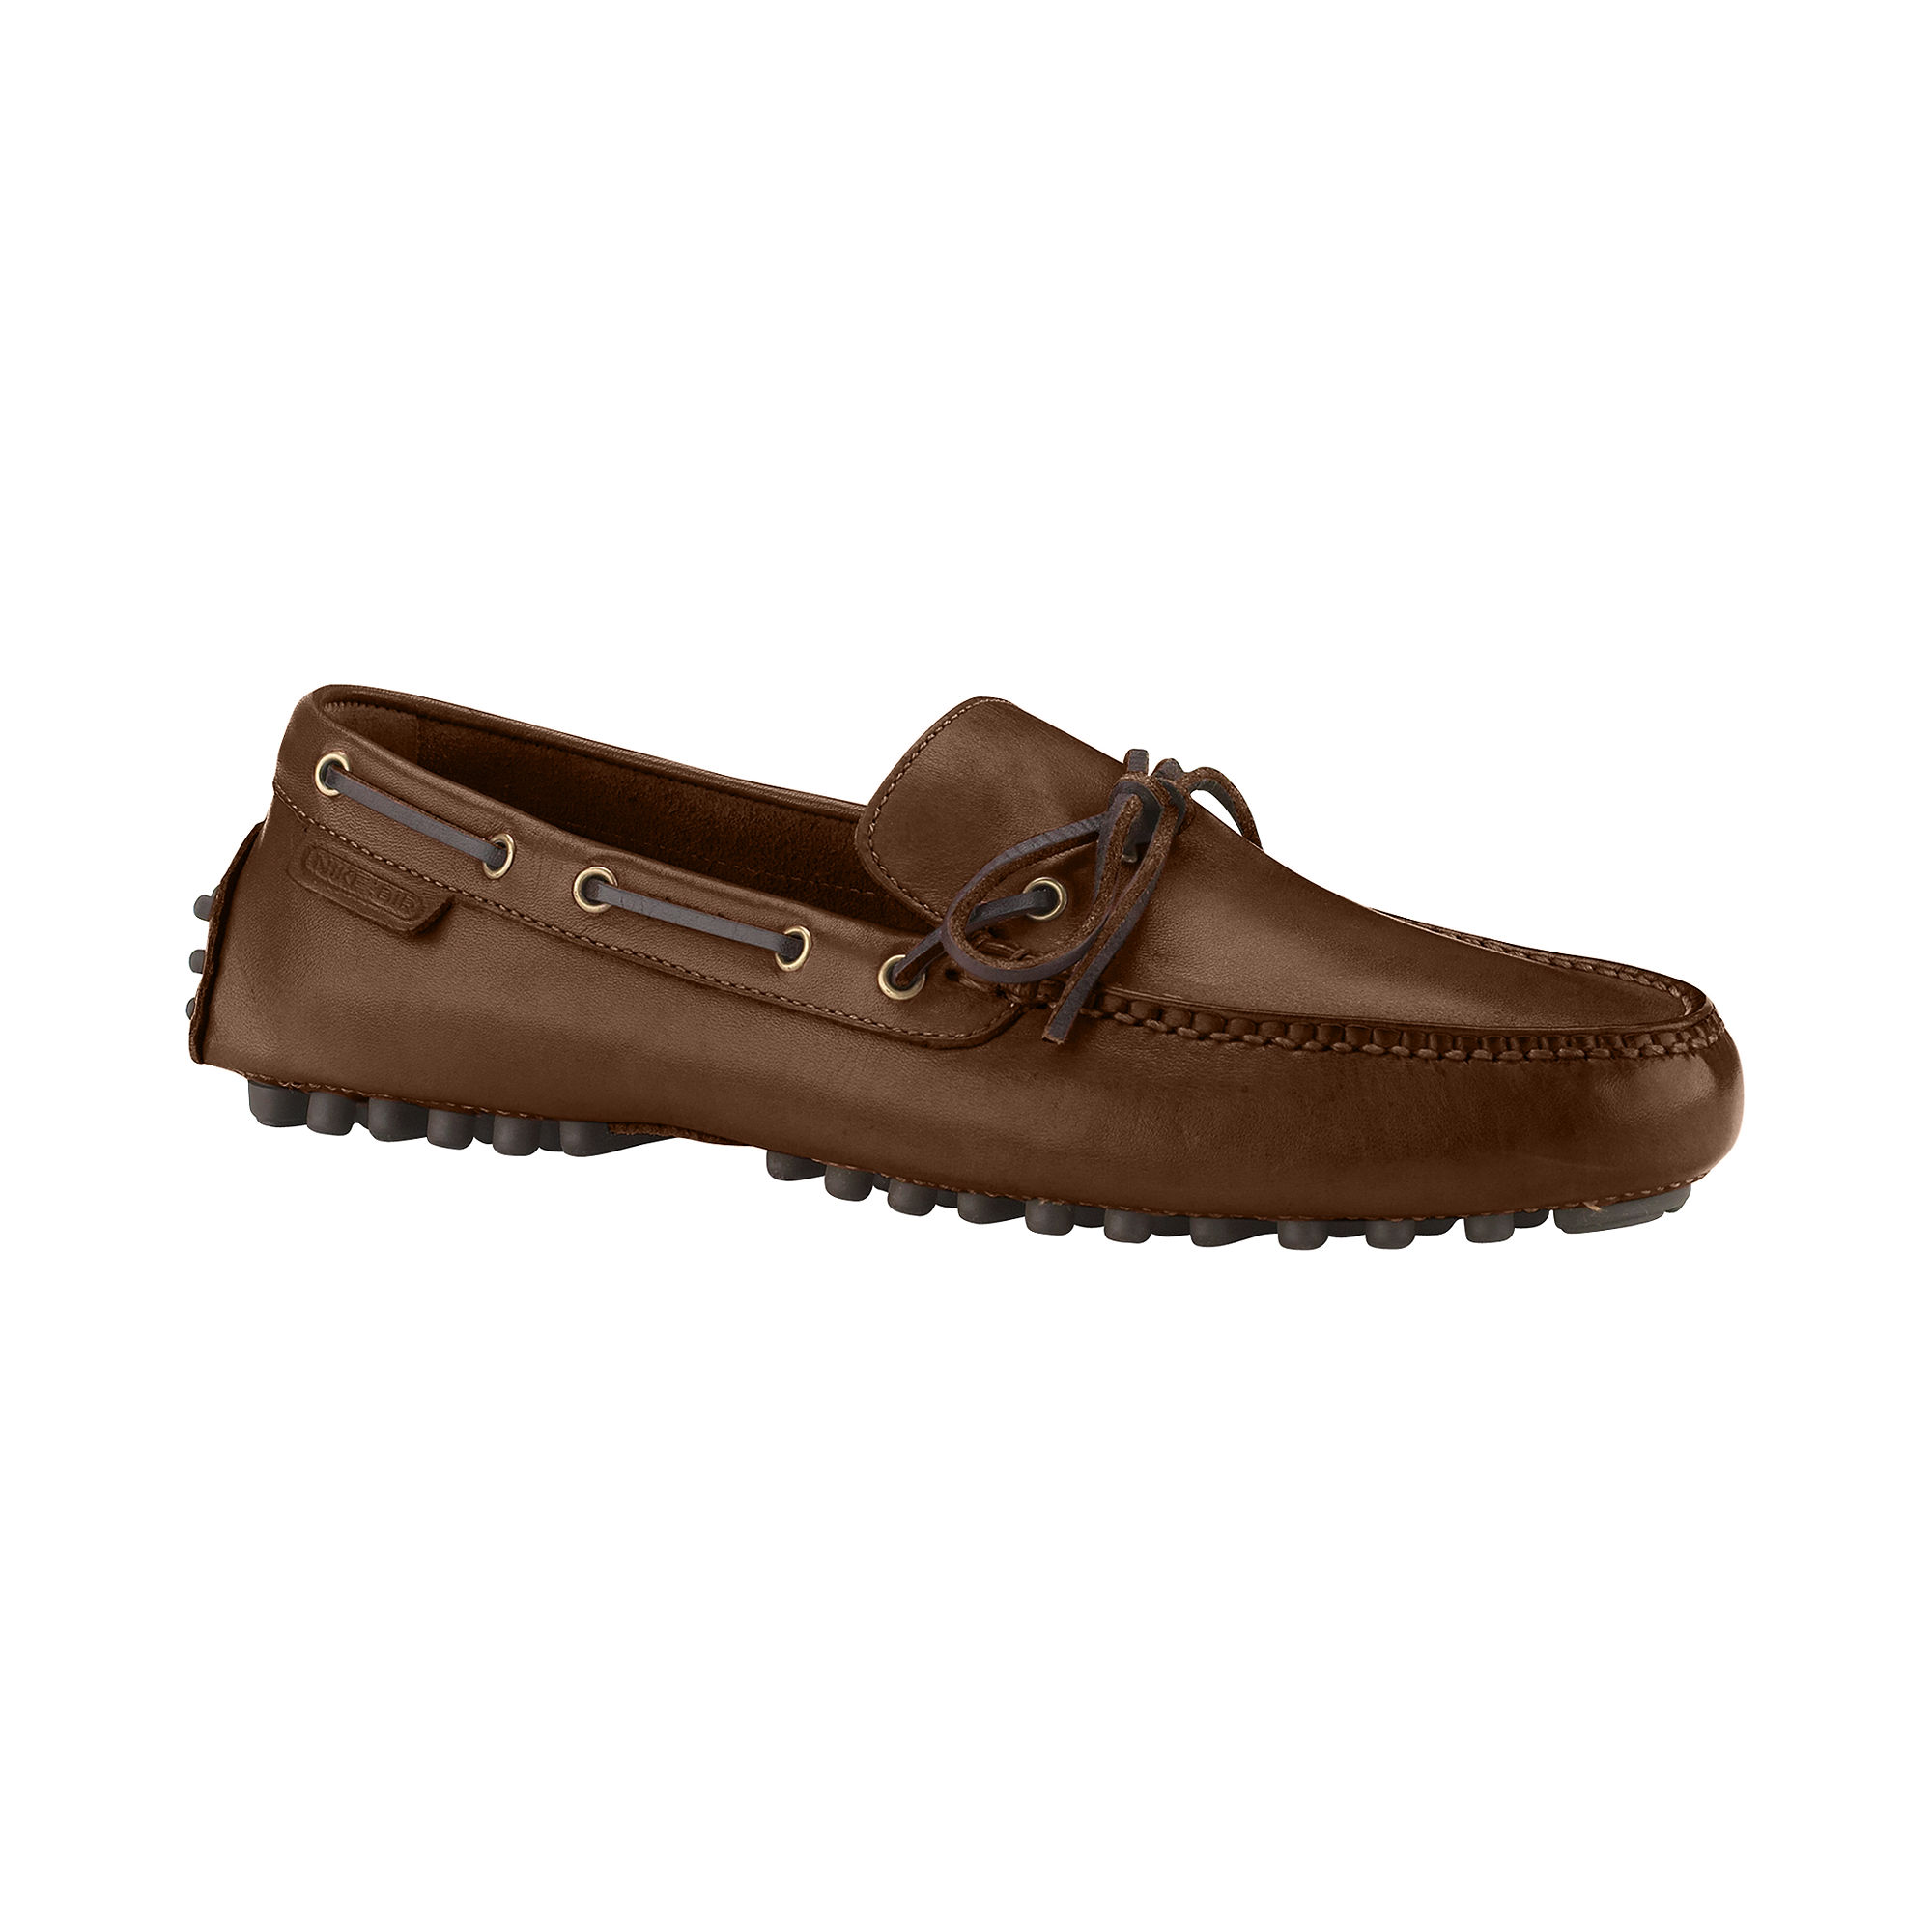 Cole Haan Shoes Air Grant Driving Moc Loafers